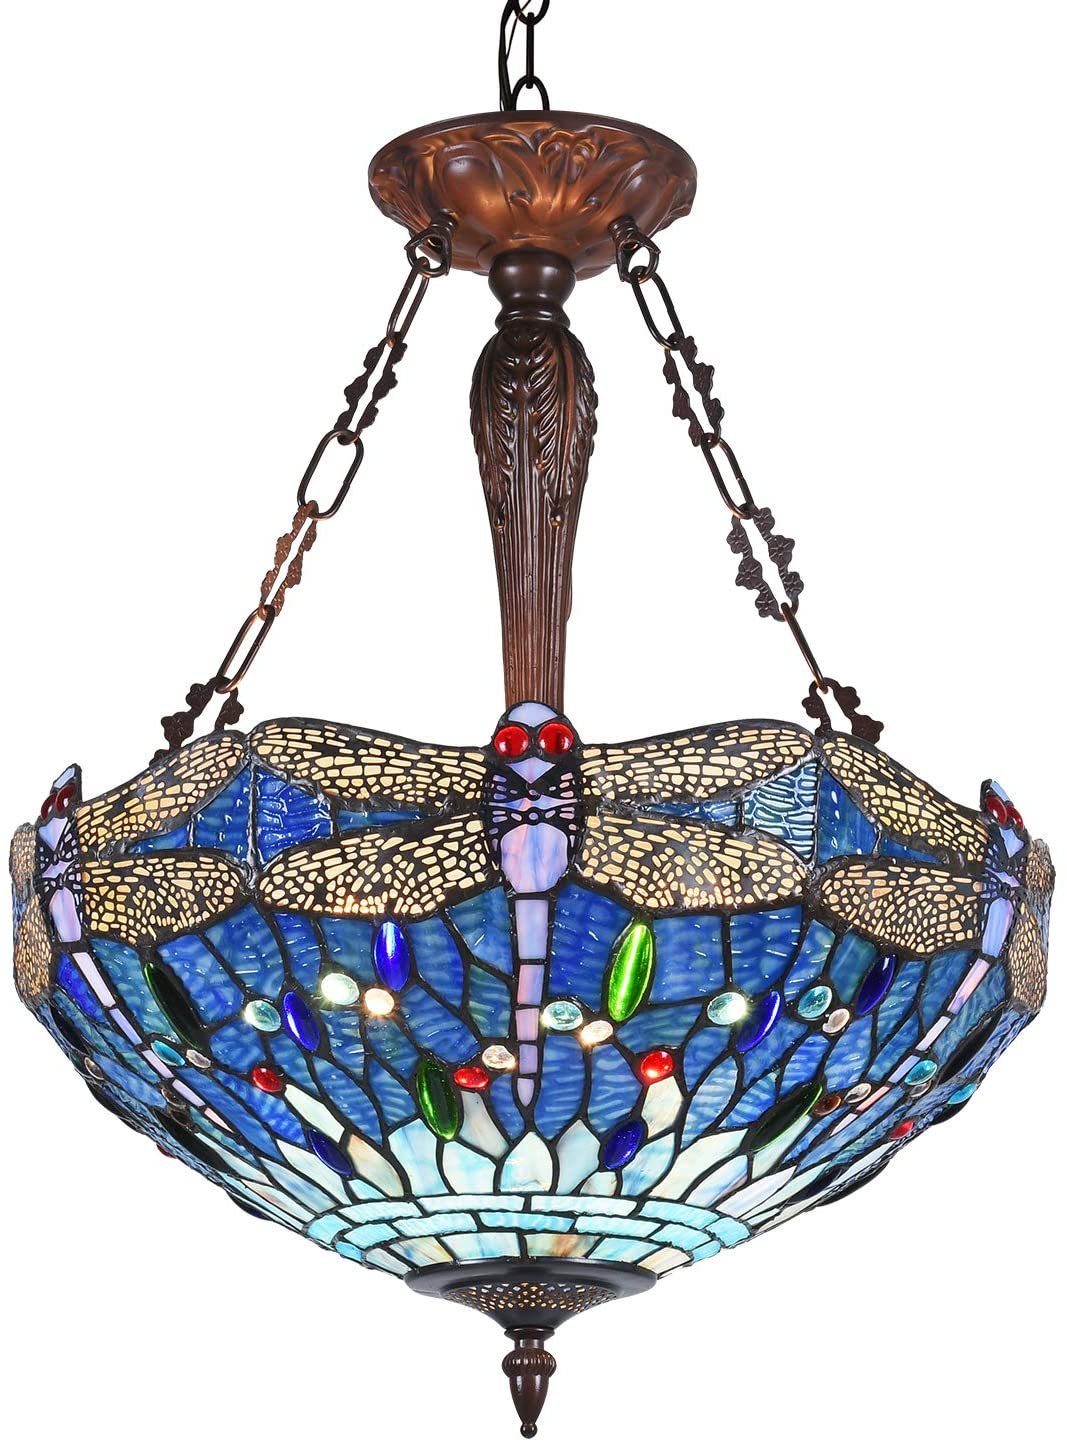 Capulina Dragonfly Design Tiffany Dining Table Lights, 3-Light Hanging Tiffany Style Lamp, 18 Inch Wide Stained Glass Dining Room Lights, Pendant Lights, Tiffany Hanging Light